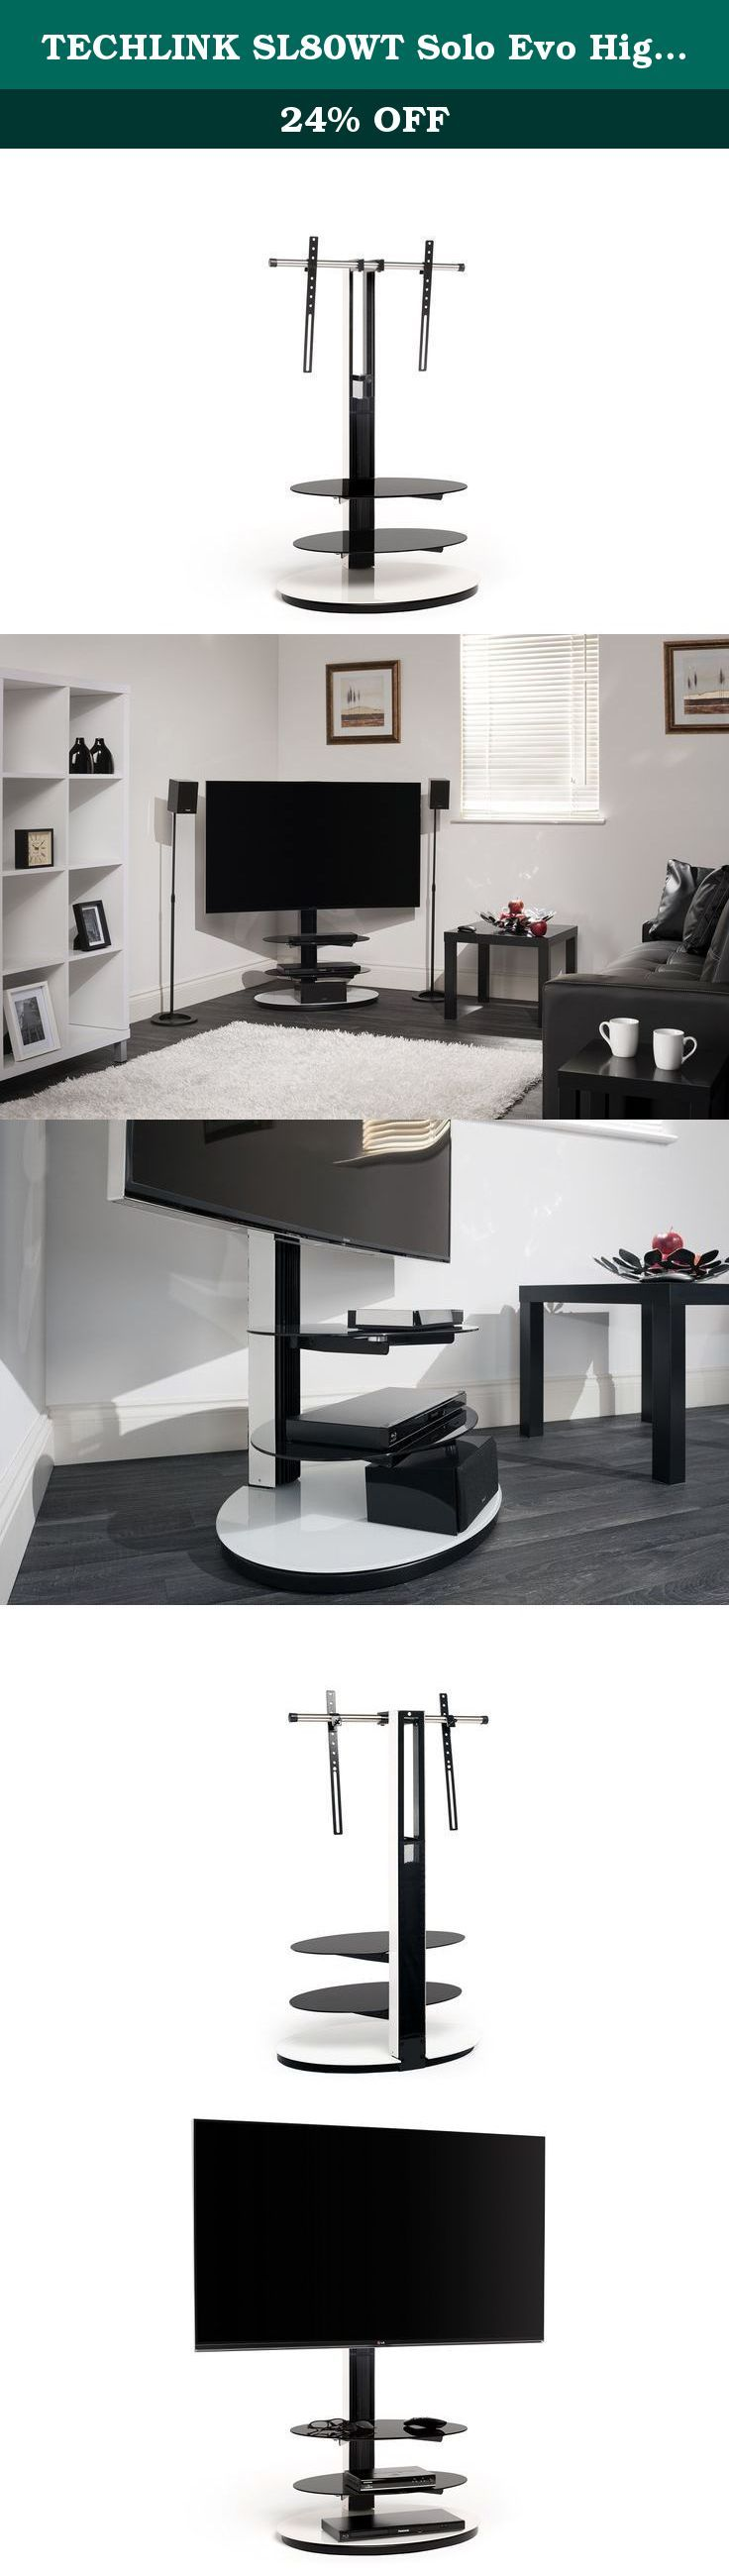 1000 Ideas About Shelf Above Tv On Pinterest Tv On Wall Ideas Living Room Tv On The Wall